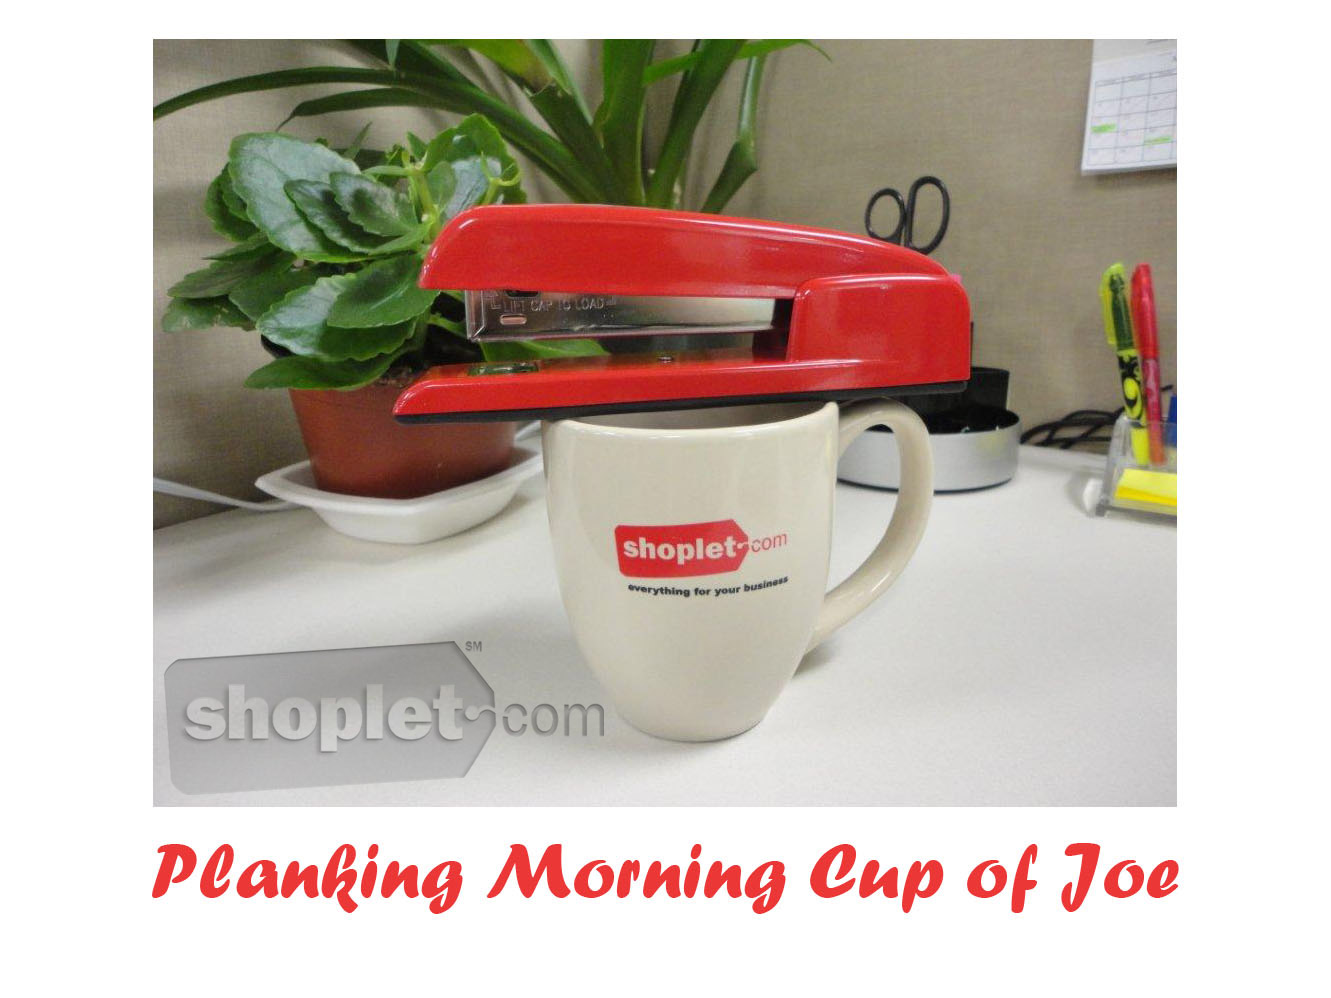 Shoplet Planking Stapler Coffee Cup The Planking Stapler has Moved!